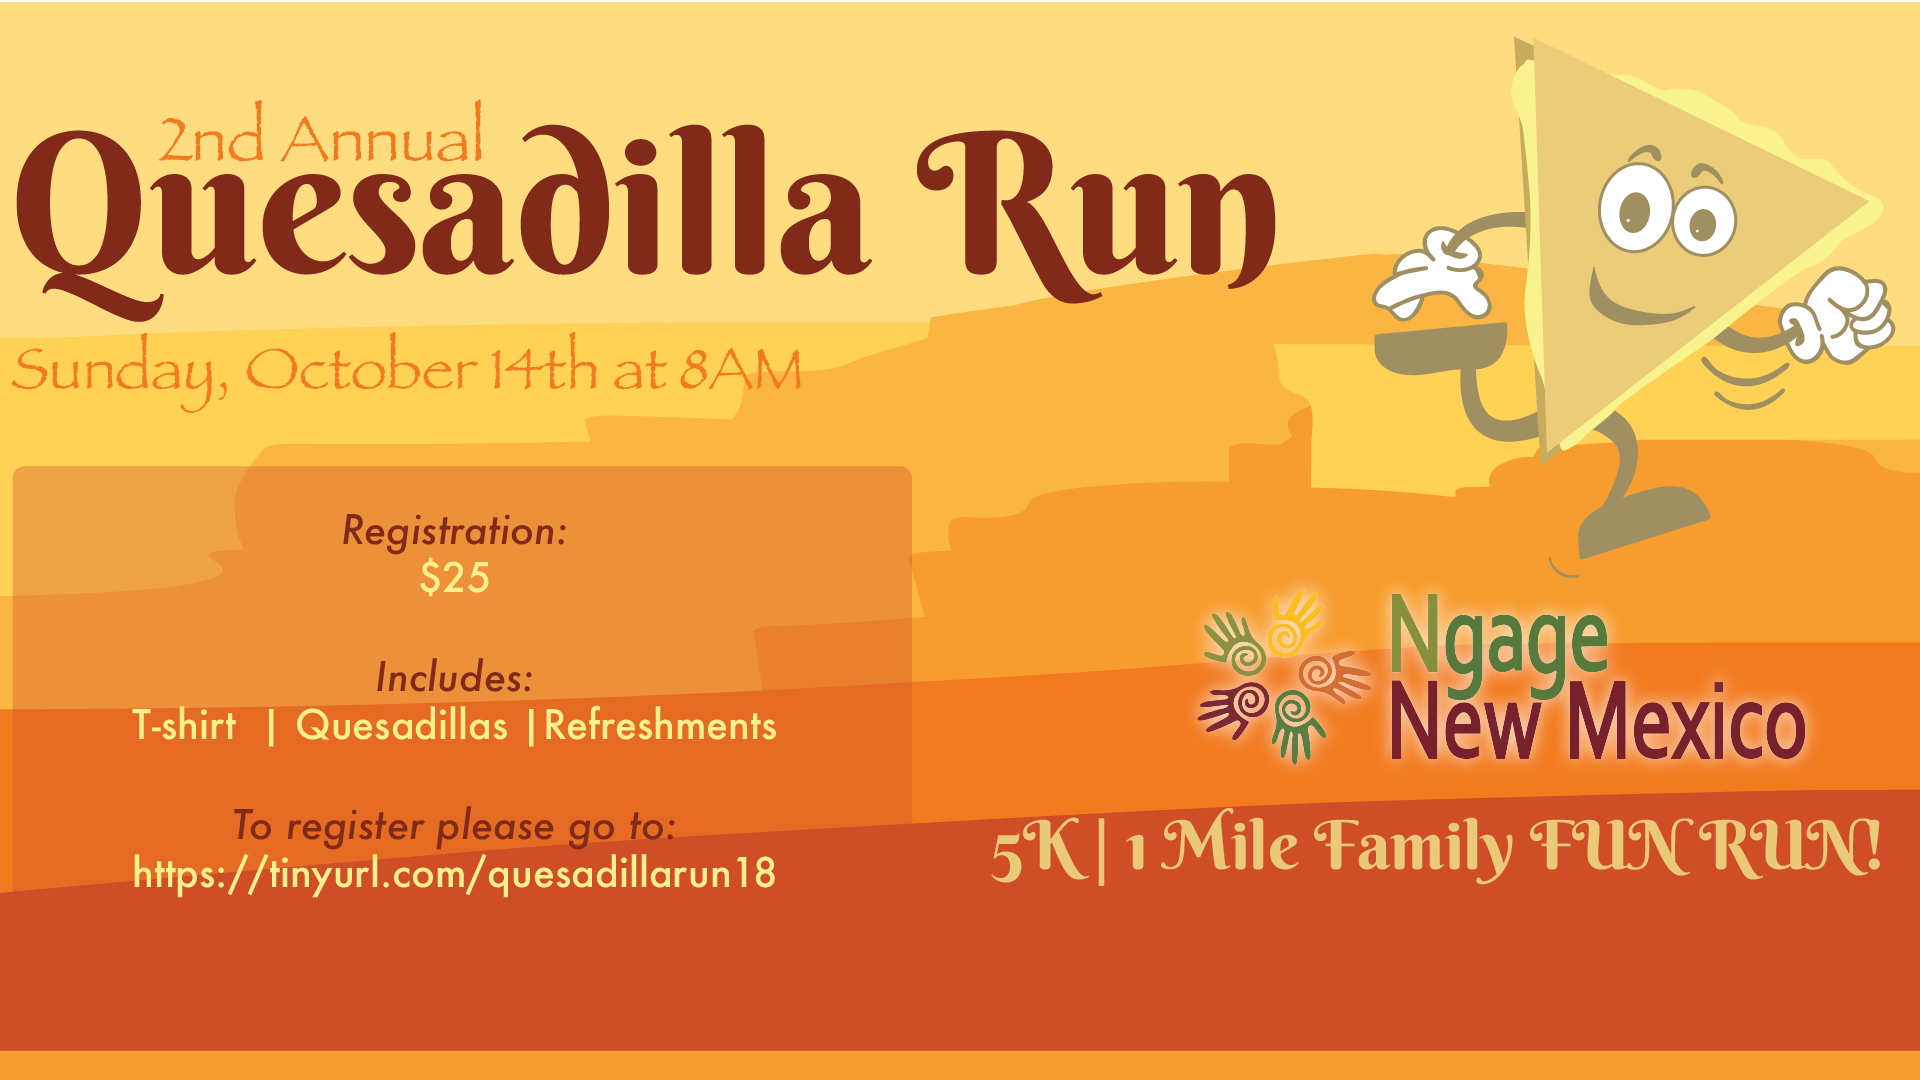 2nd Annual Quesadilla Run Flyer